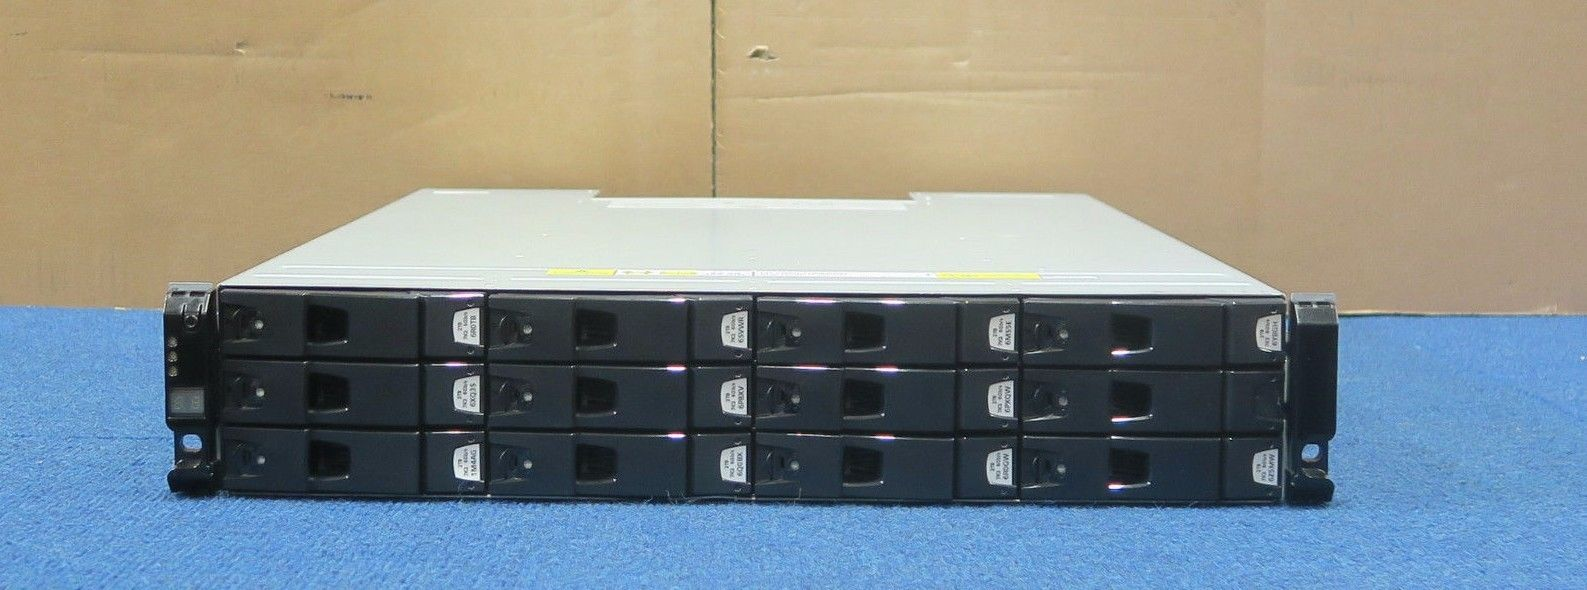 Dell Compellent Series 30/40 HB-1235 12-Bay SAS 12x 2TB SAS Expansion/DAS  array